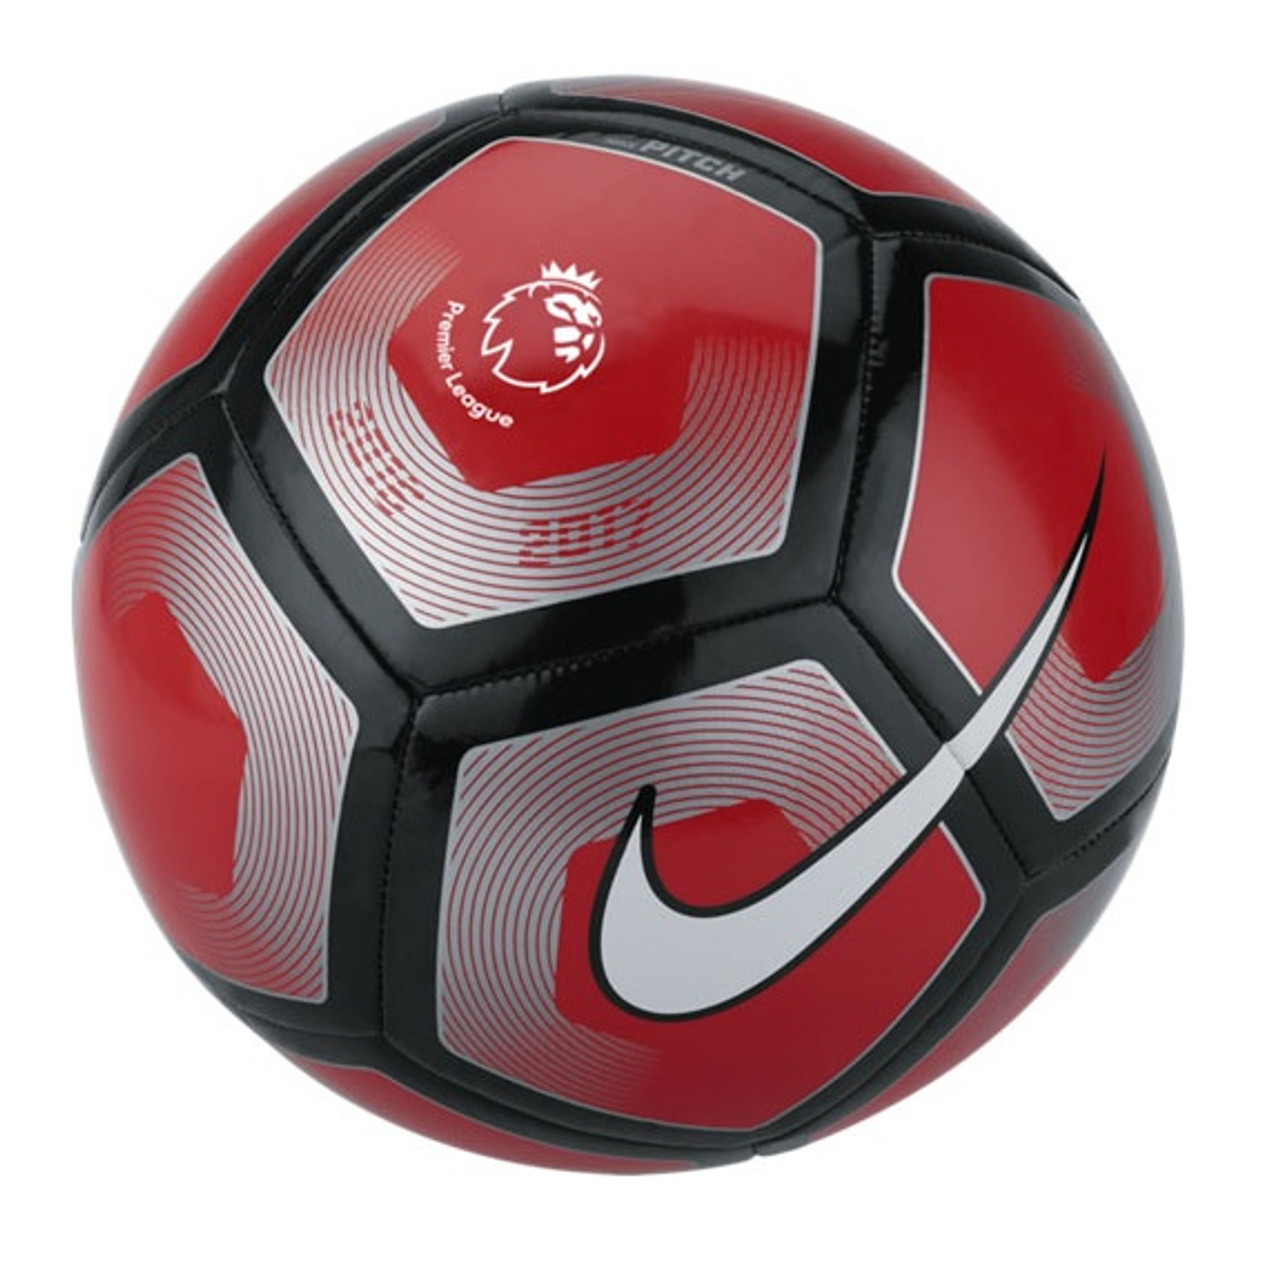 ab3a1a086f96 Nike Premier League Pitch Ball - Red/Black/Silver - ohp soccer